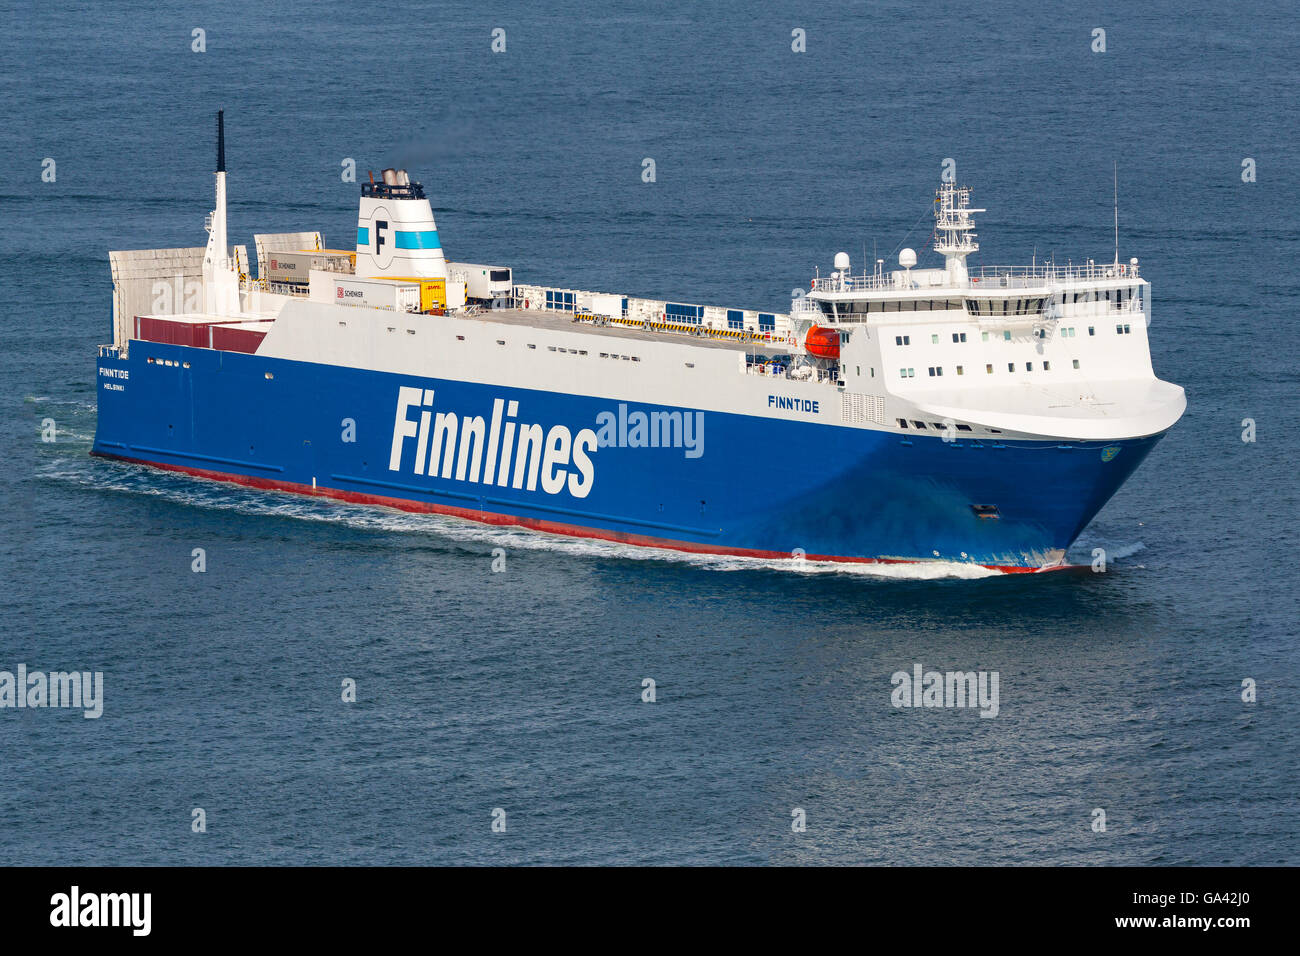 Finnlines' 'Finntide' arriving at the harbour of Travemünde, Germany. - Stock Image